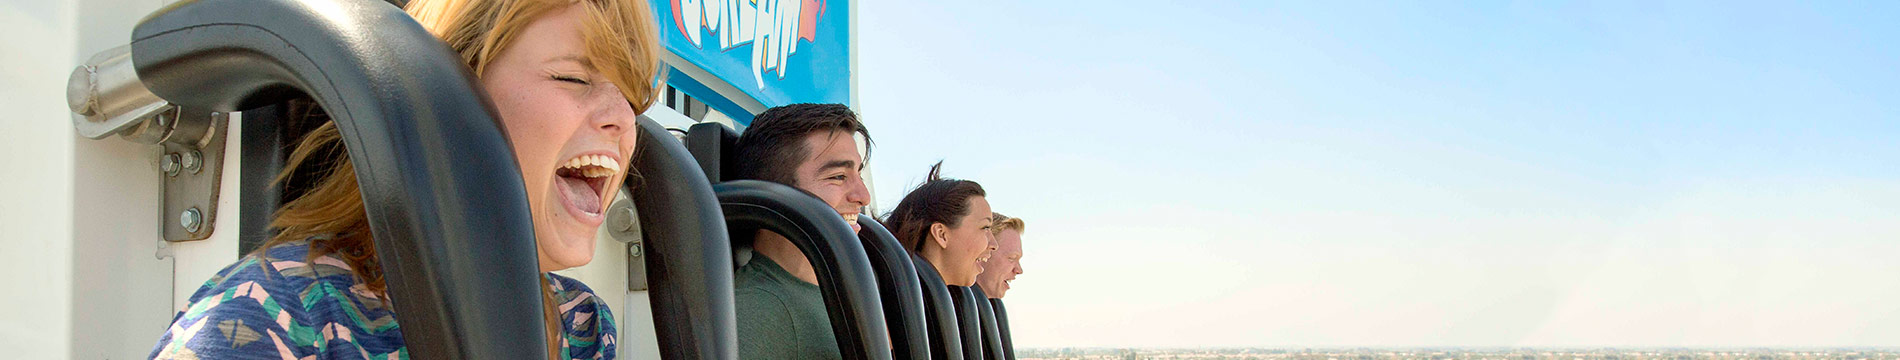 Discount tickets, coupons, admission, and more for Knott's Berry Farm.